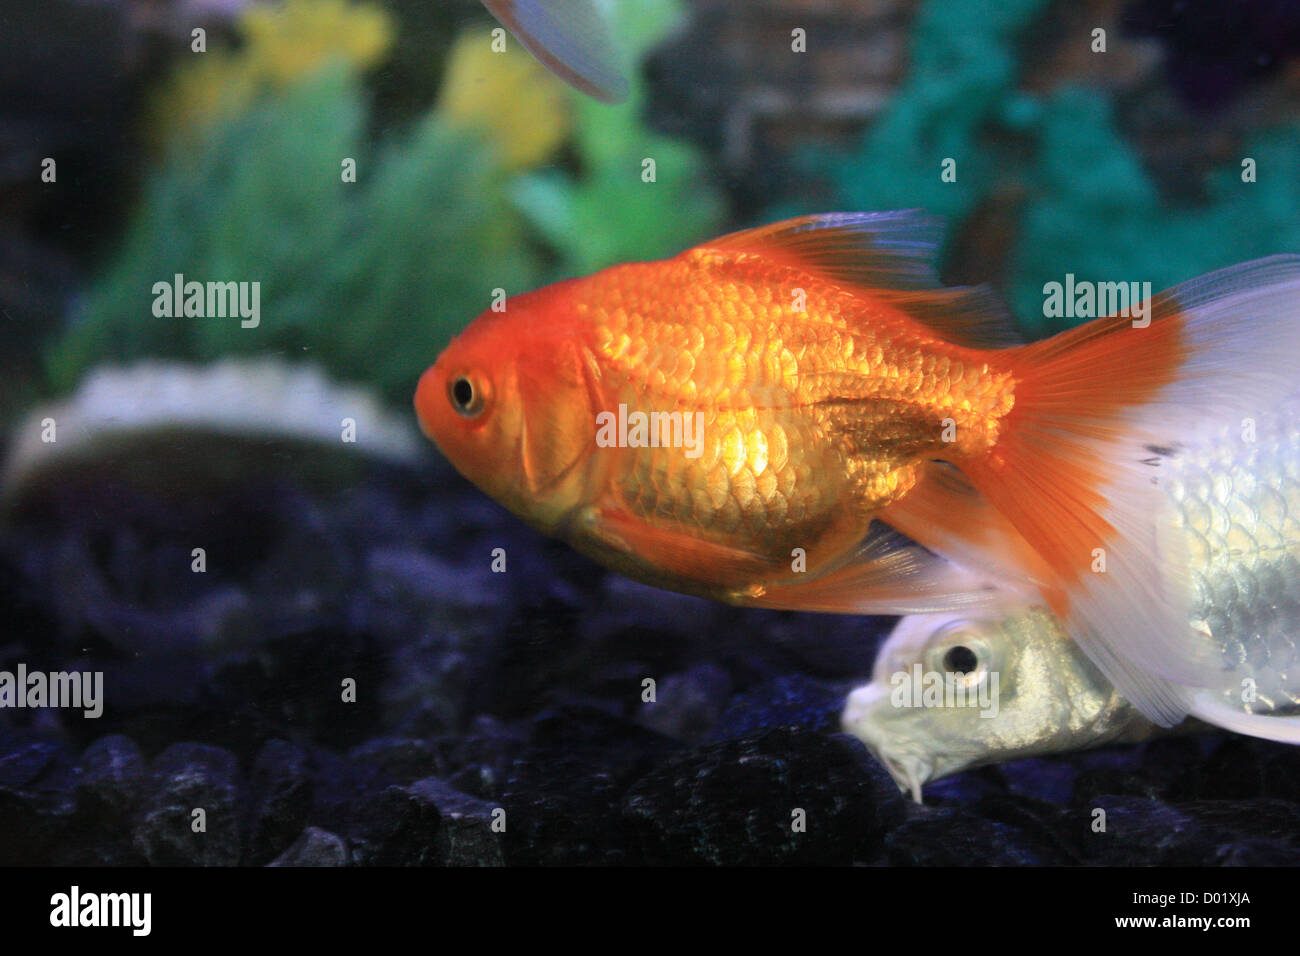 Freshwater aquarium fish mail order - Freshwater Fish Aquarium Fish Tropical Fish Pictures Of Fish Fish Tanks Fish For Sale All About Fish Salt Water Fish Che